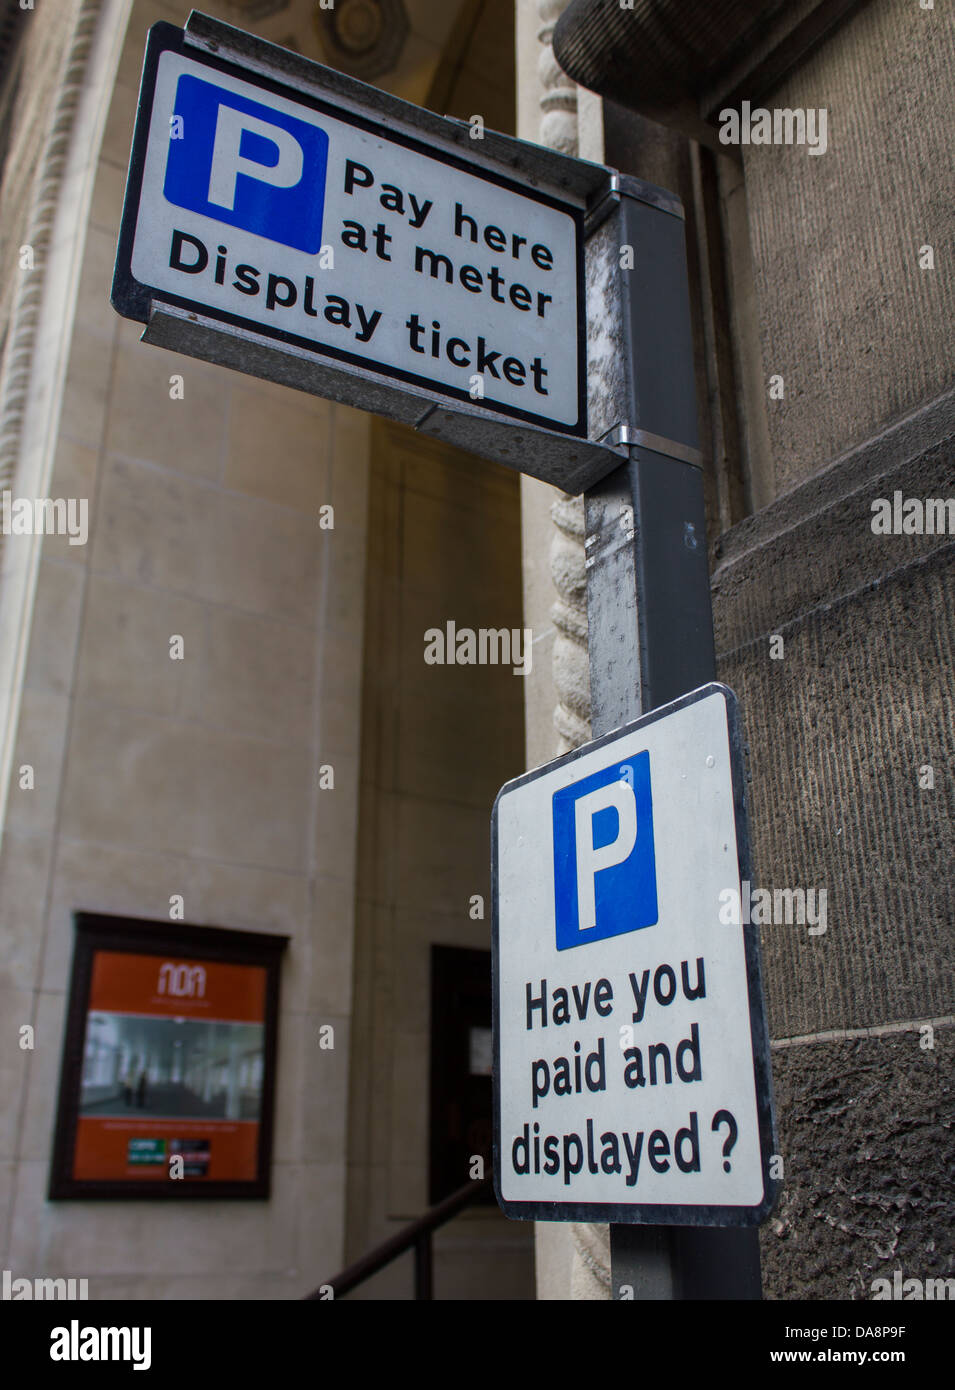 pay-and-display-meter-liverpool-england-